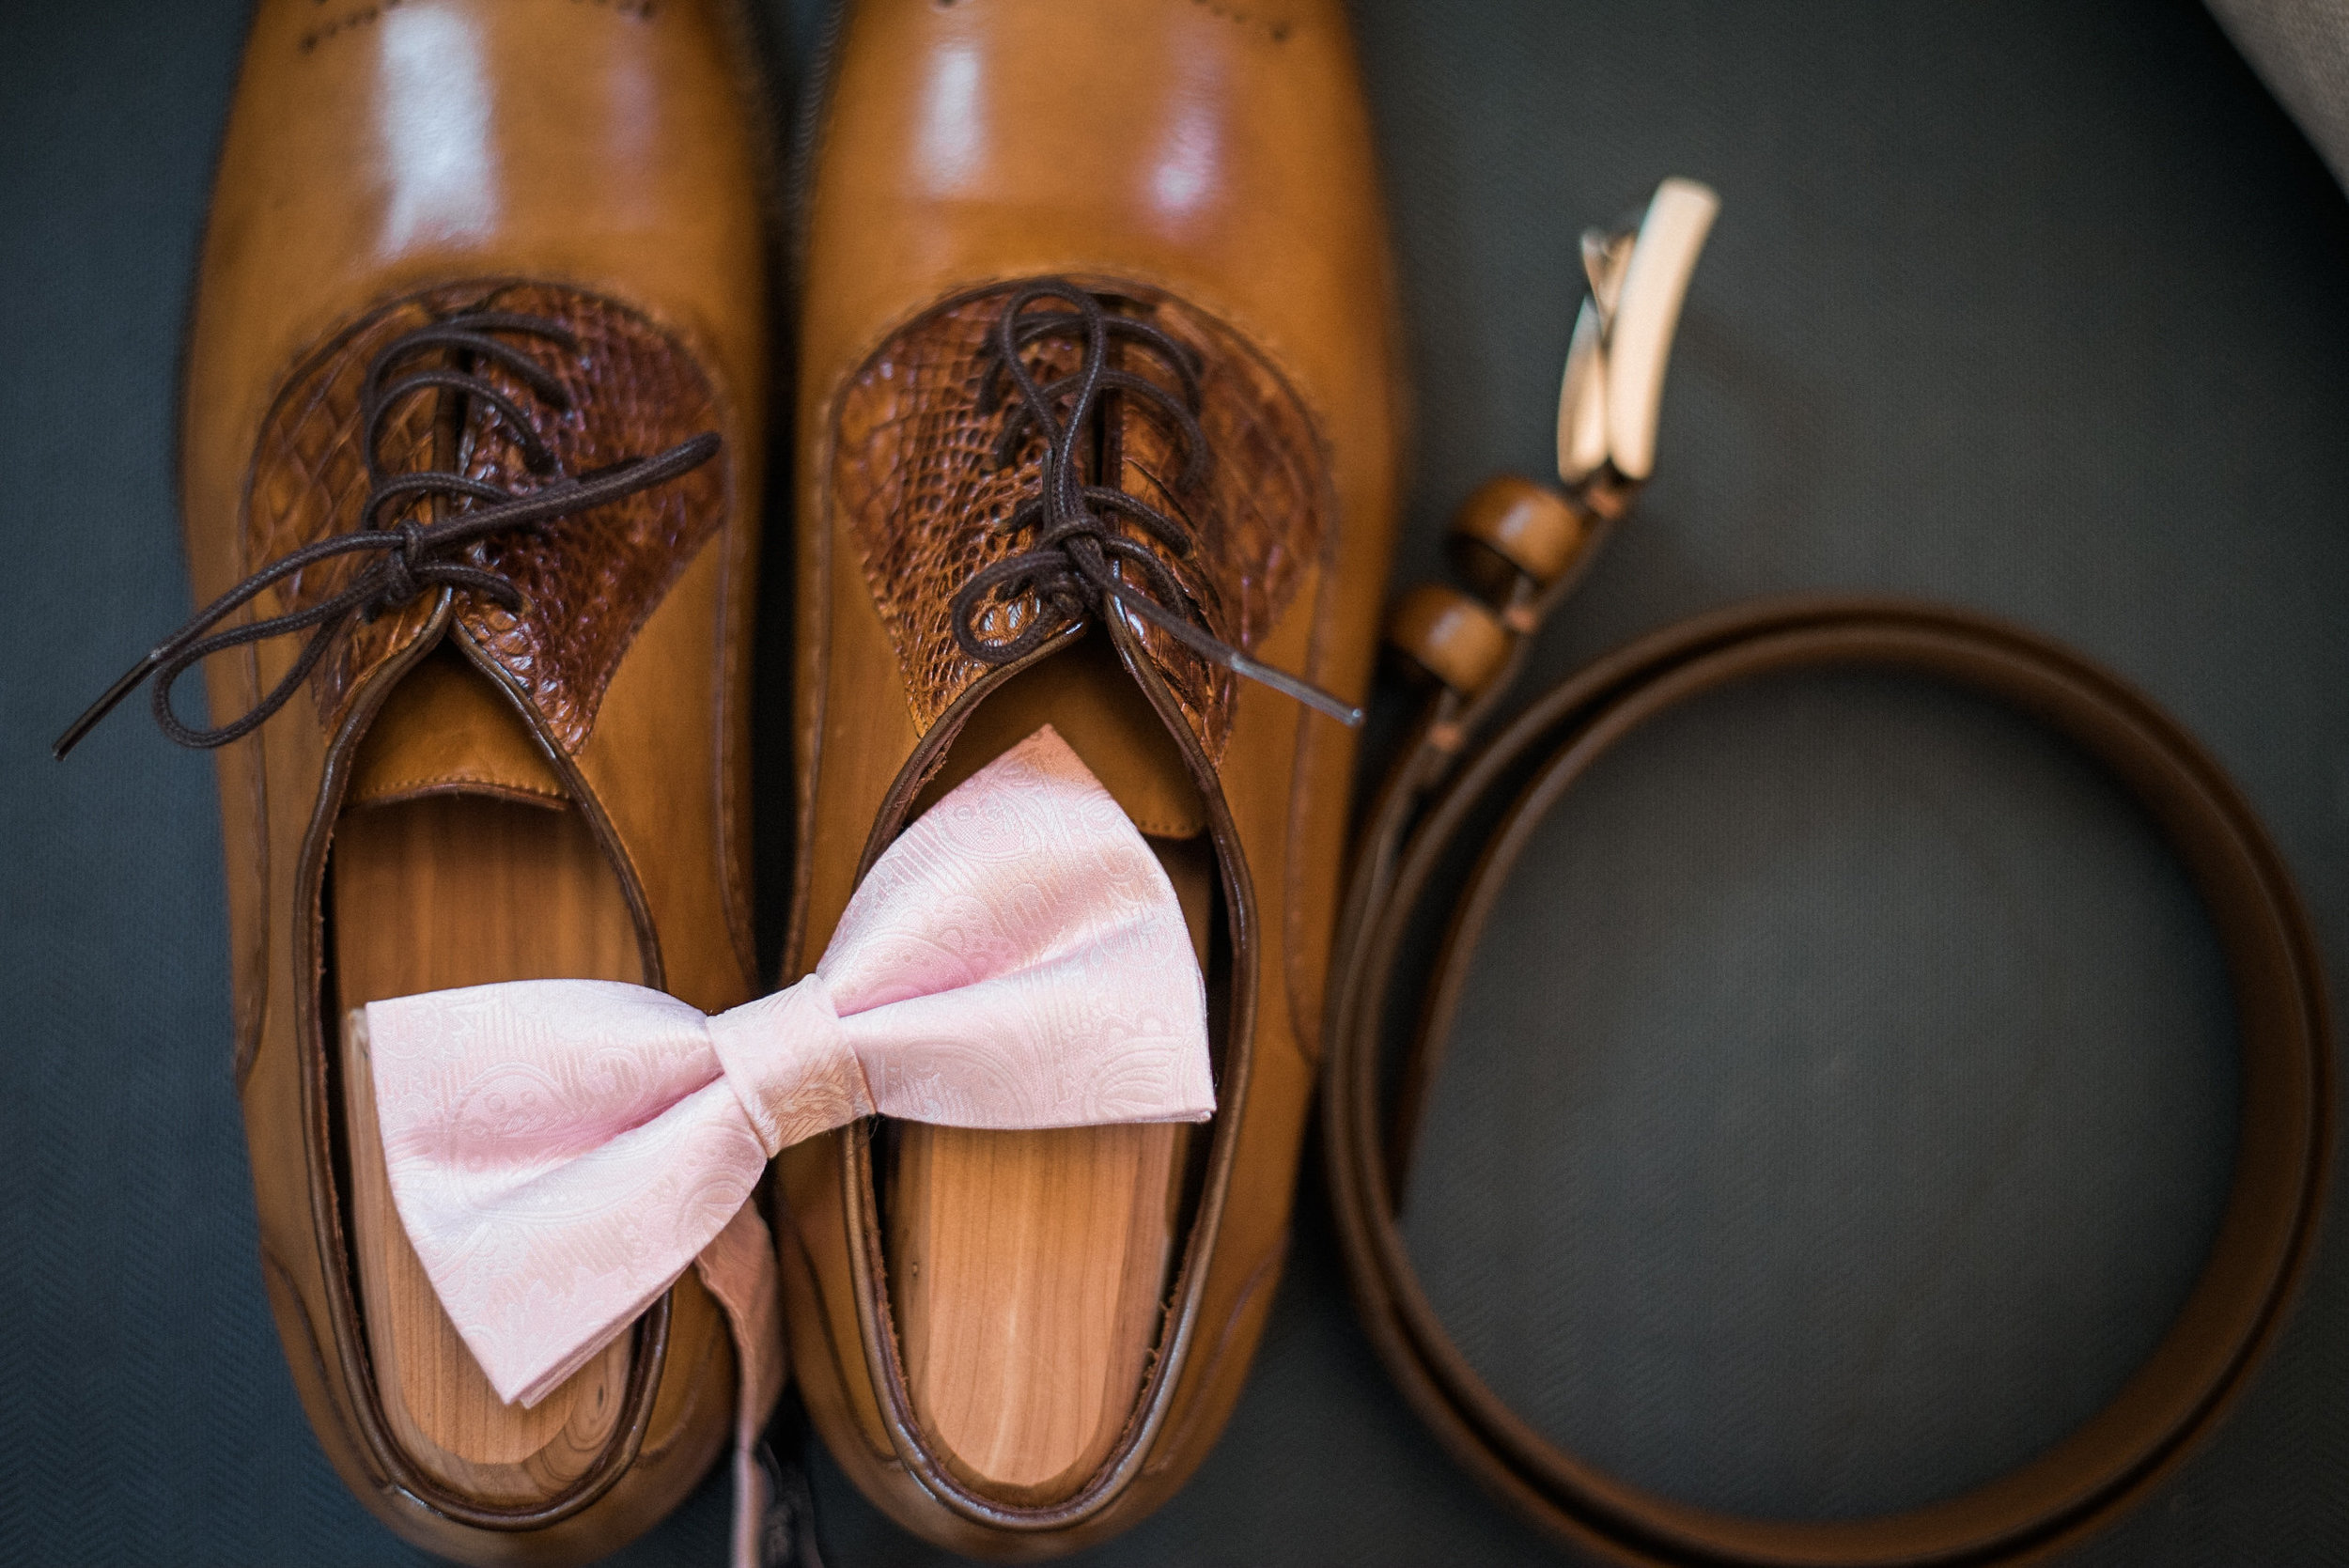 Groom's shoes and belt buckle